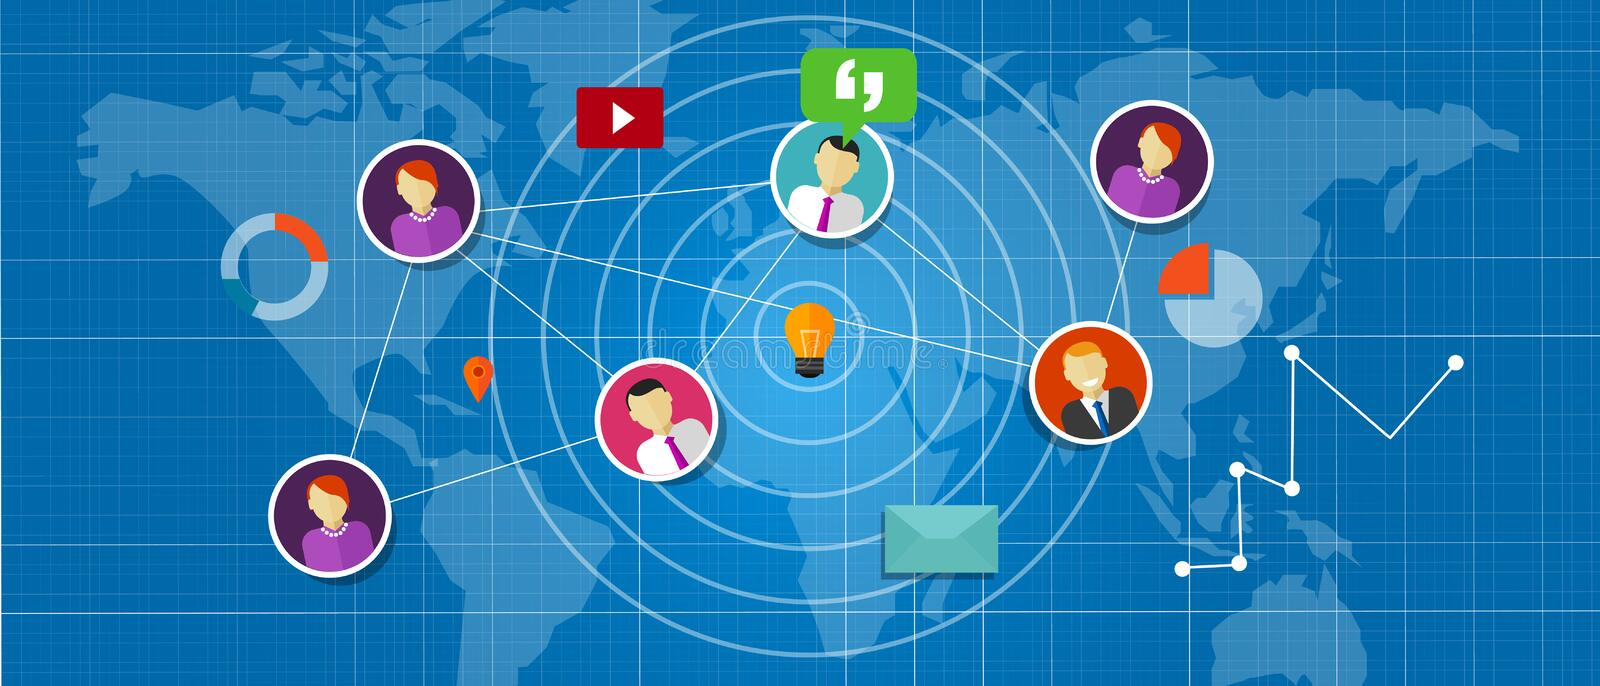 Social network media interconnected people around the world. Globe stock illustration